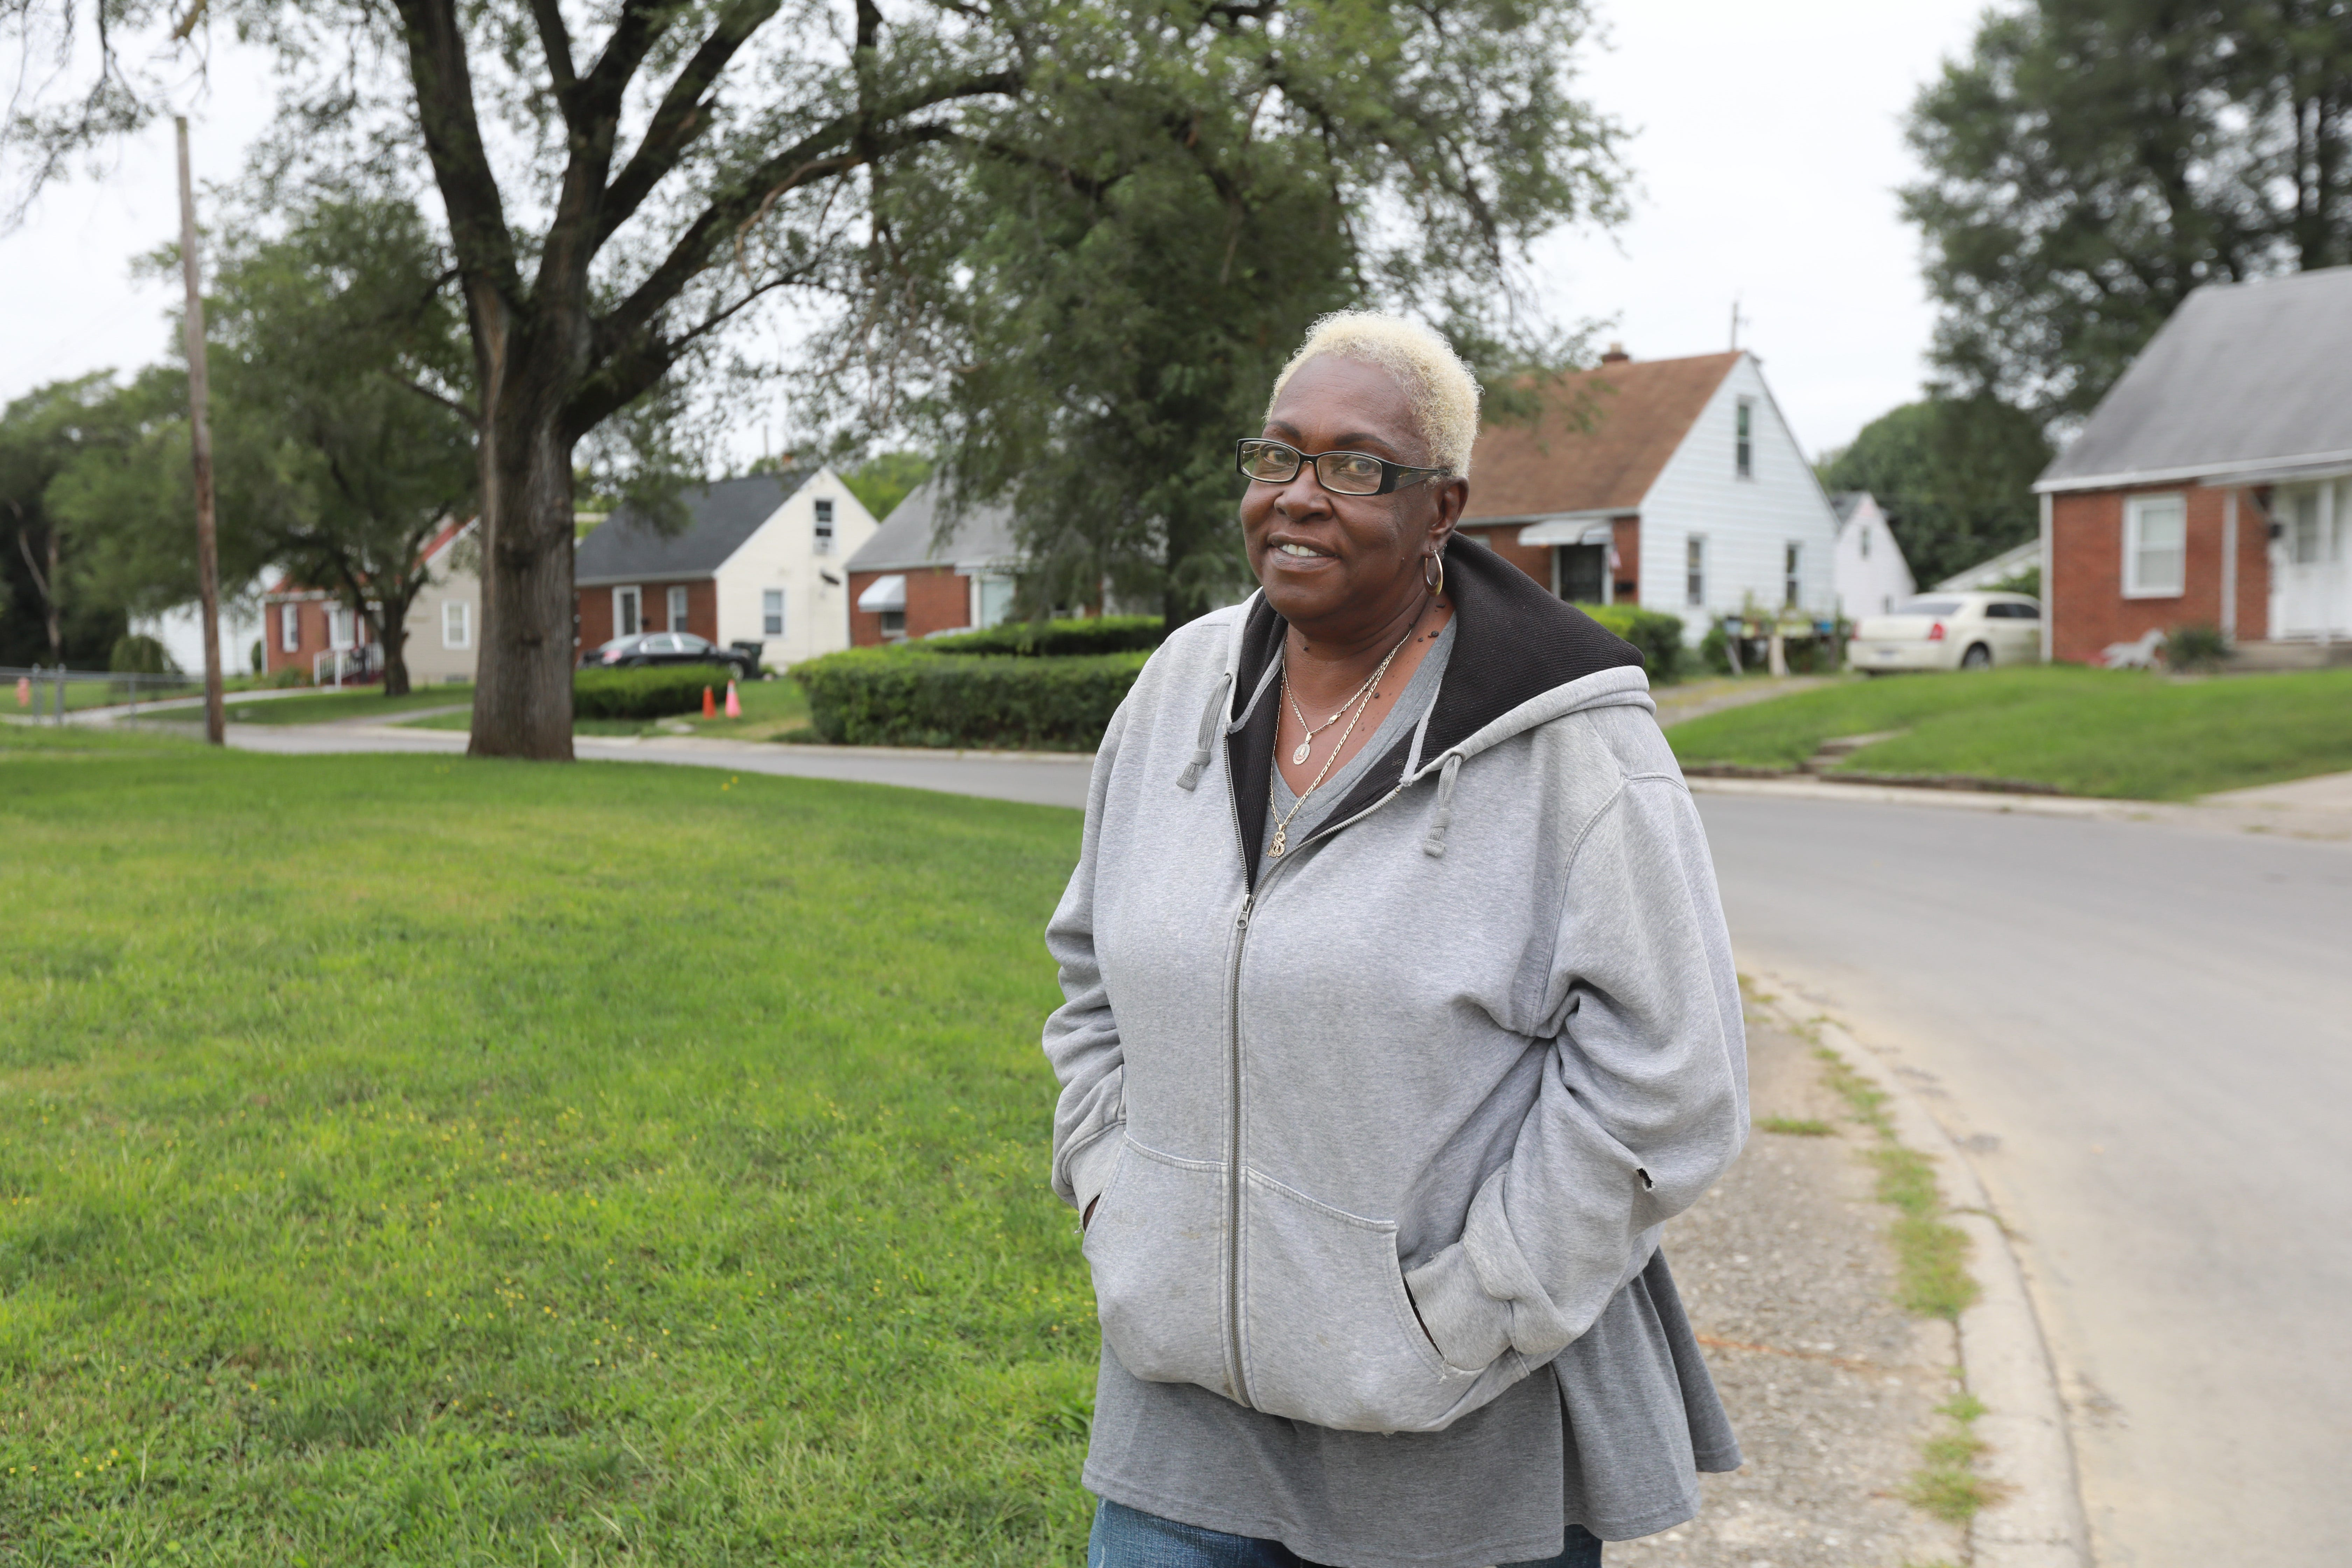 Shirley Mixon, 71, grew up in the predominantly Black neighborhood Hanford Village and saw it divided by the construction of I-70 in the 1960s.